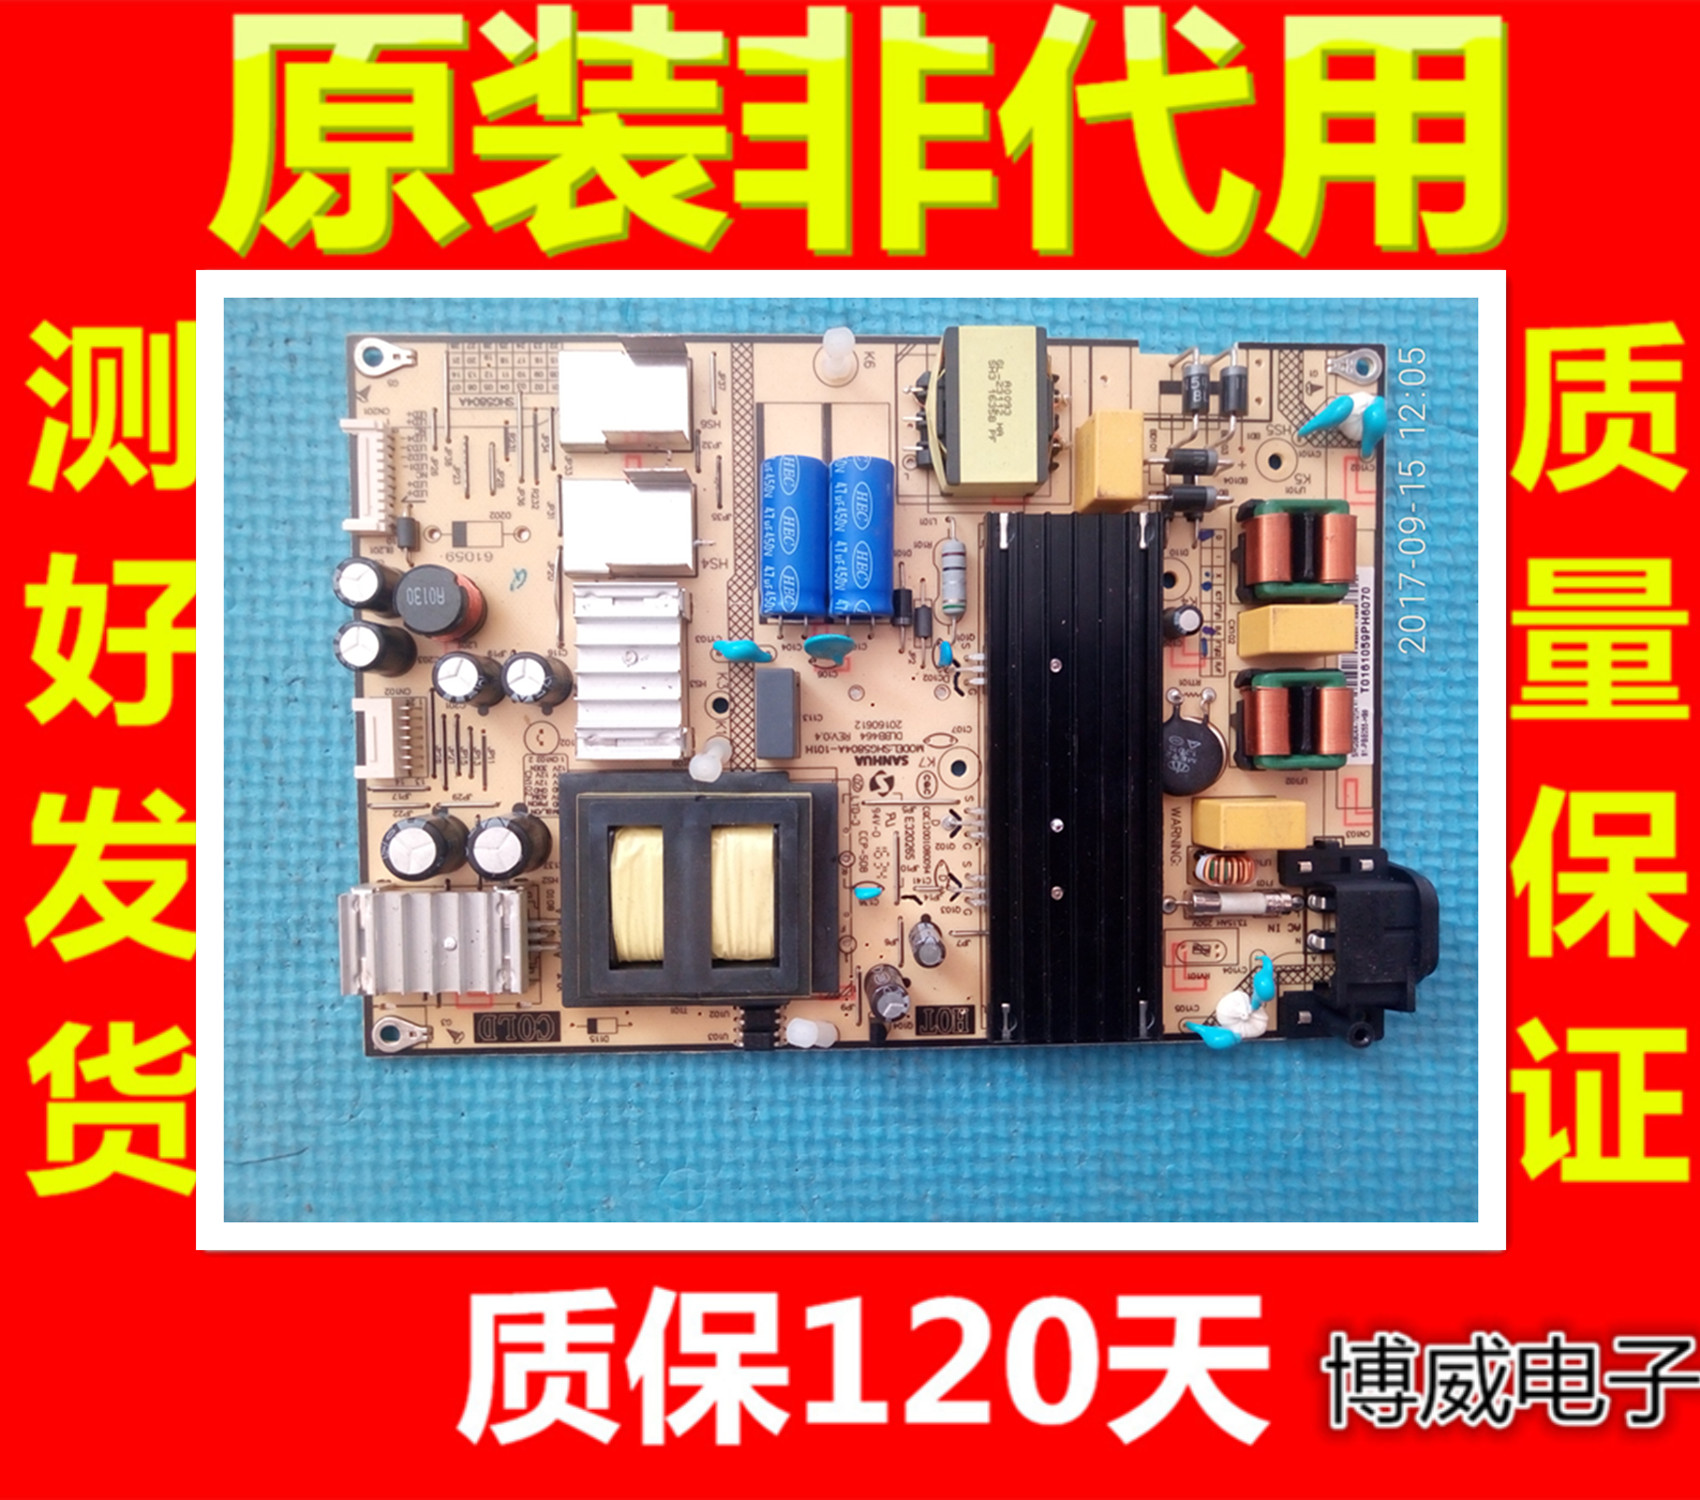 TCLL49P1A-F49寸の液晶テレビの電源ライト知能昇圧高圧恒流板LY1427 +